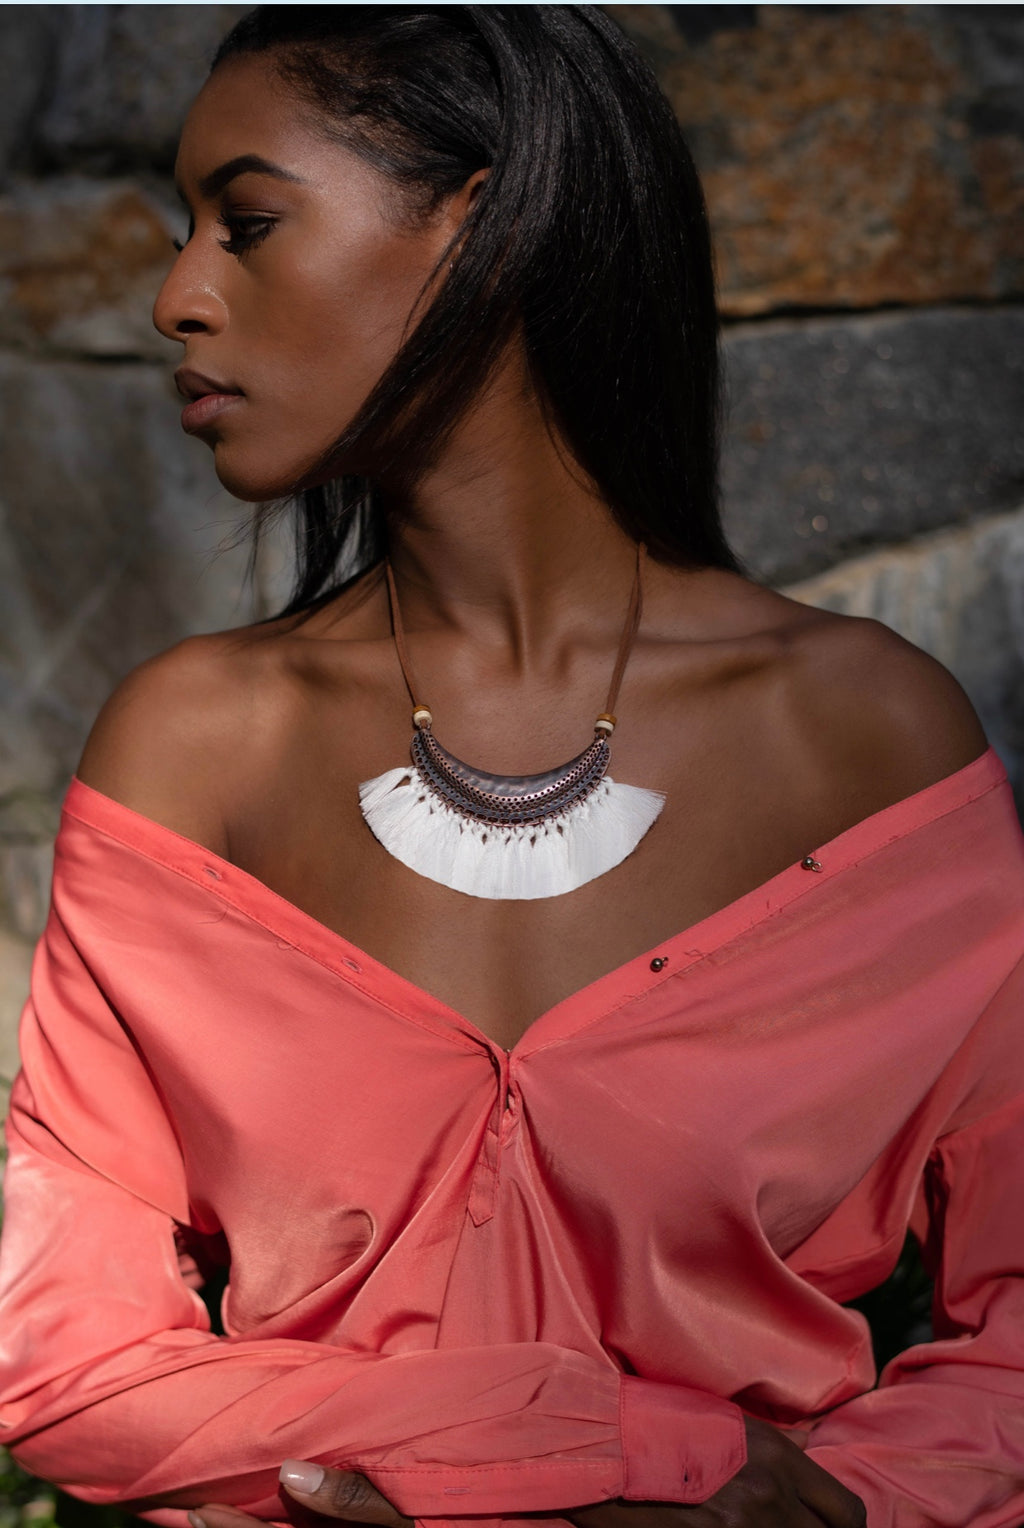 Alloy Necklace - Marabou Jewelry